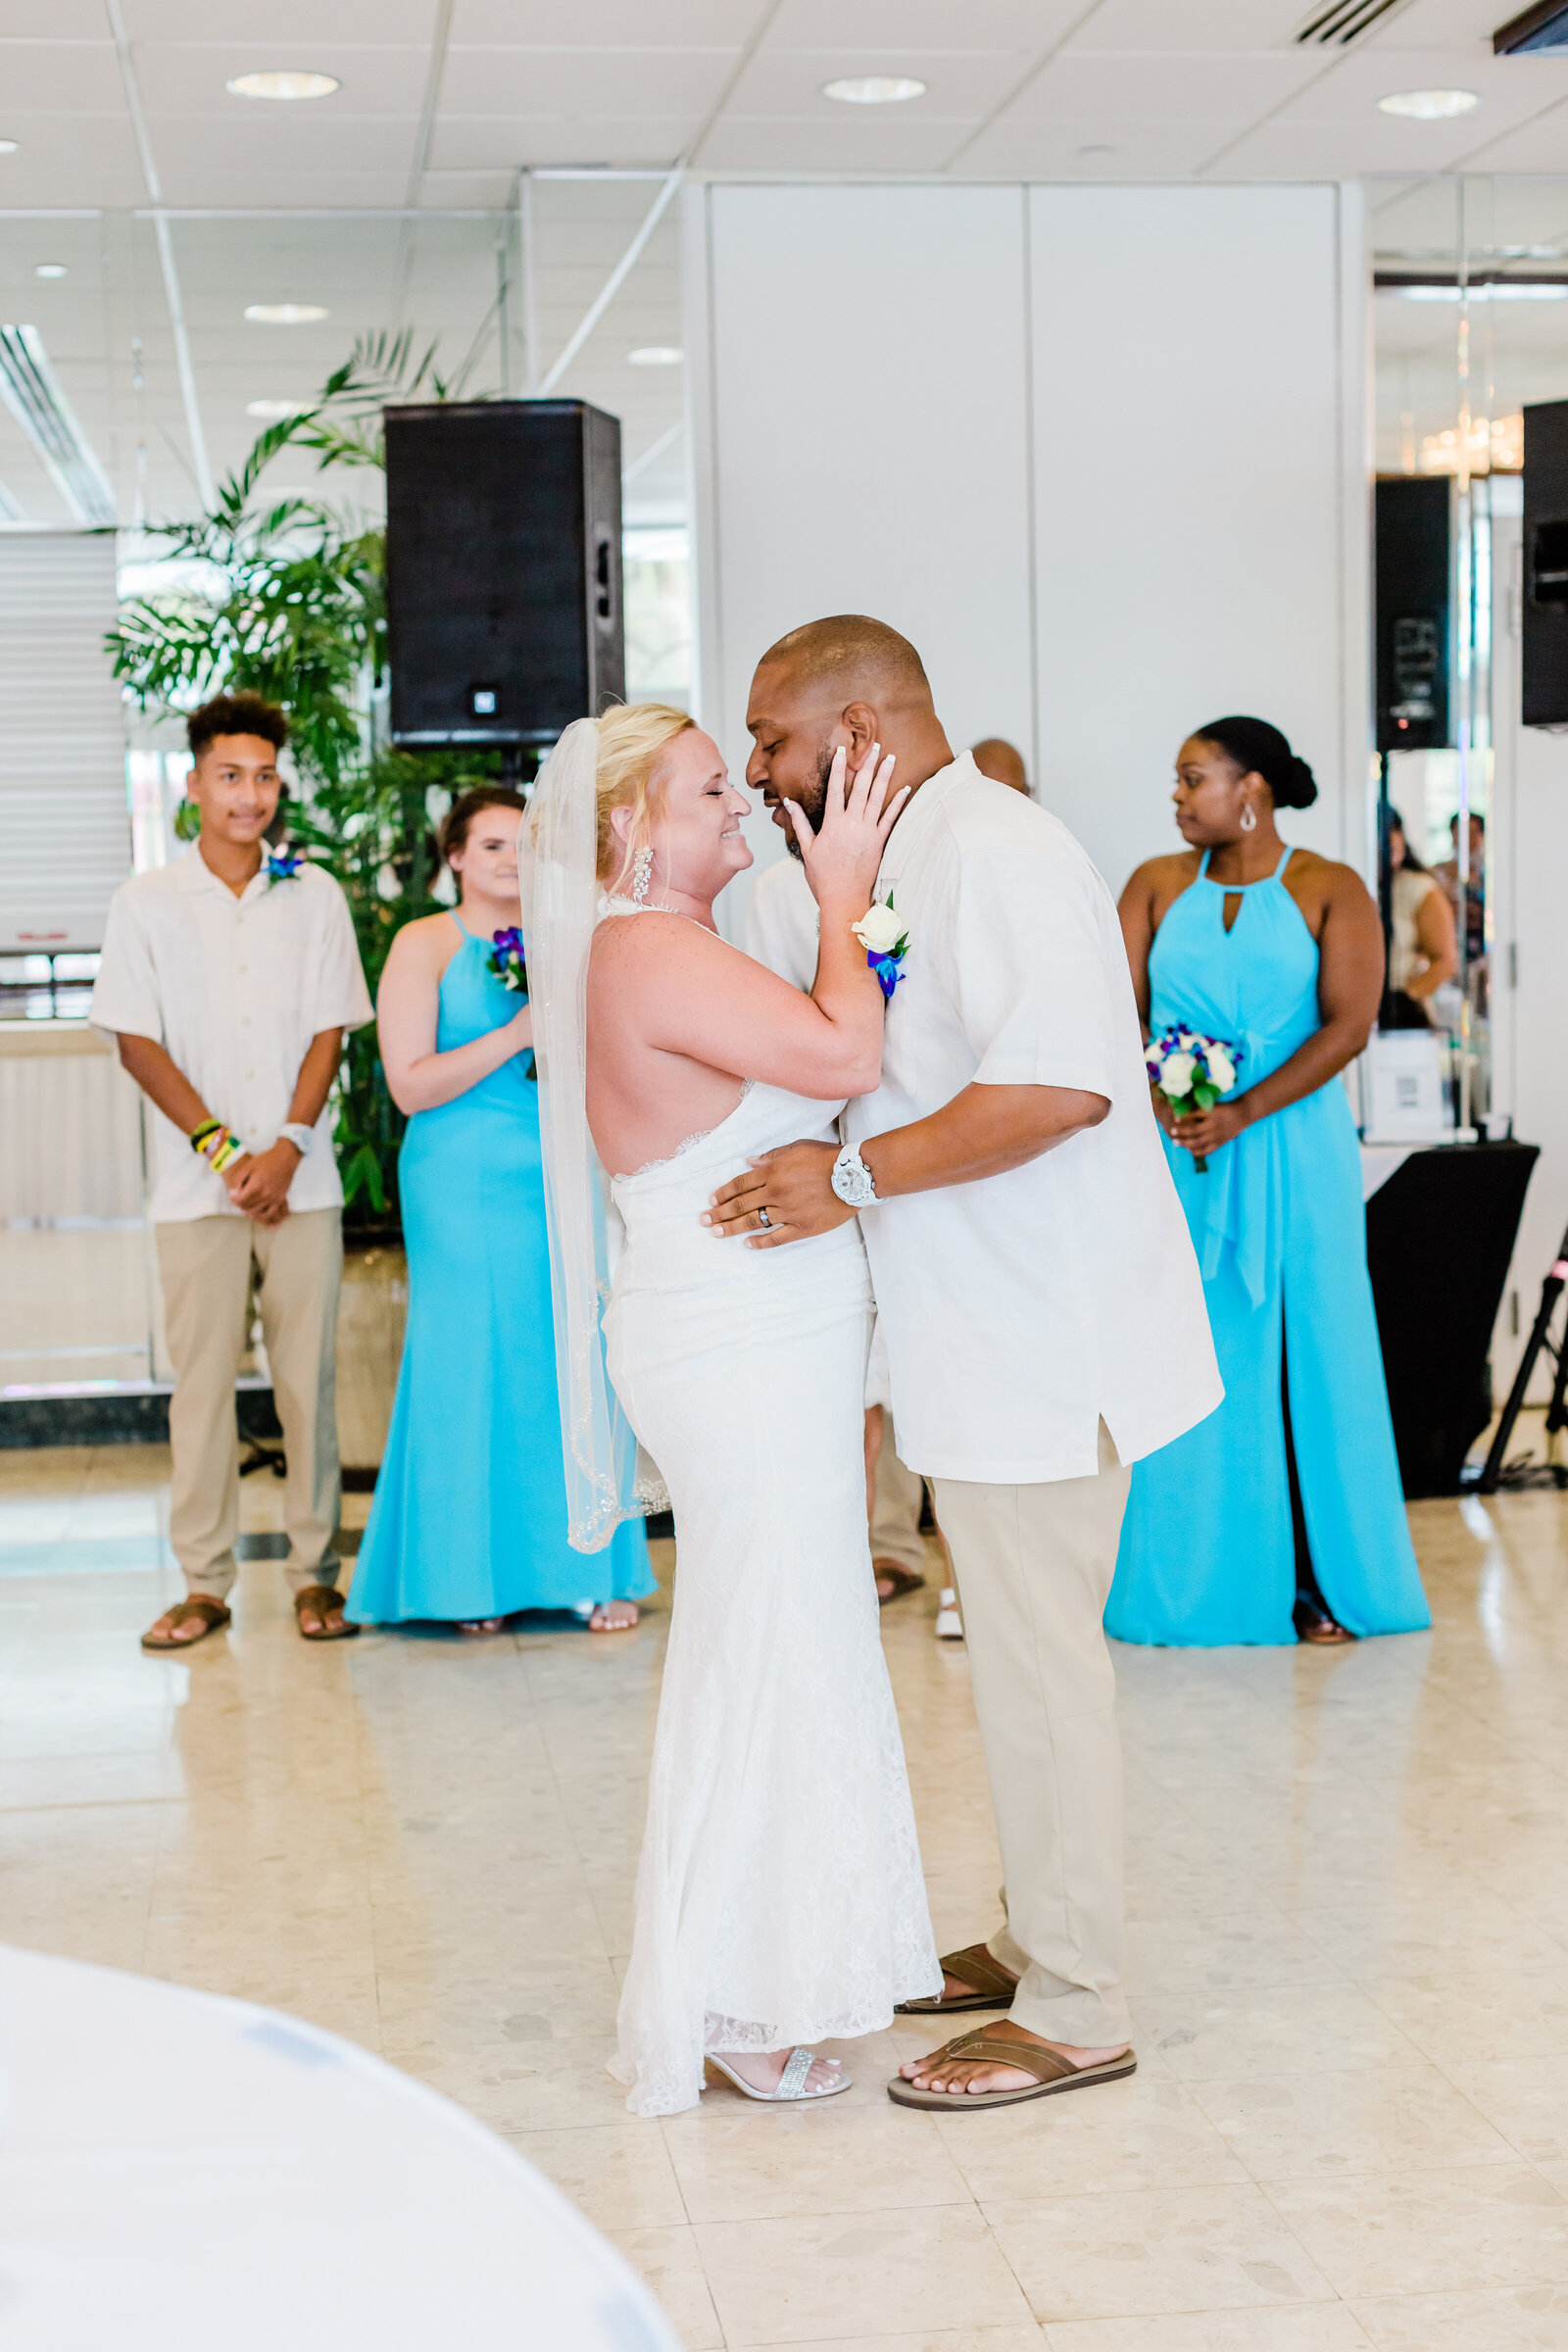 Sherri and Johnnie-38